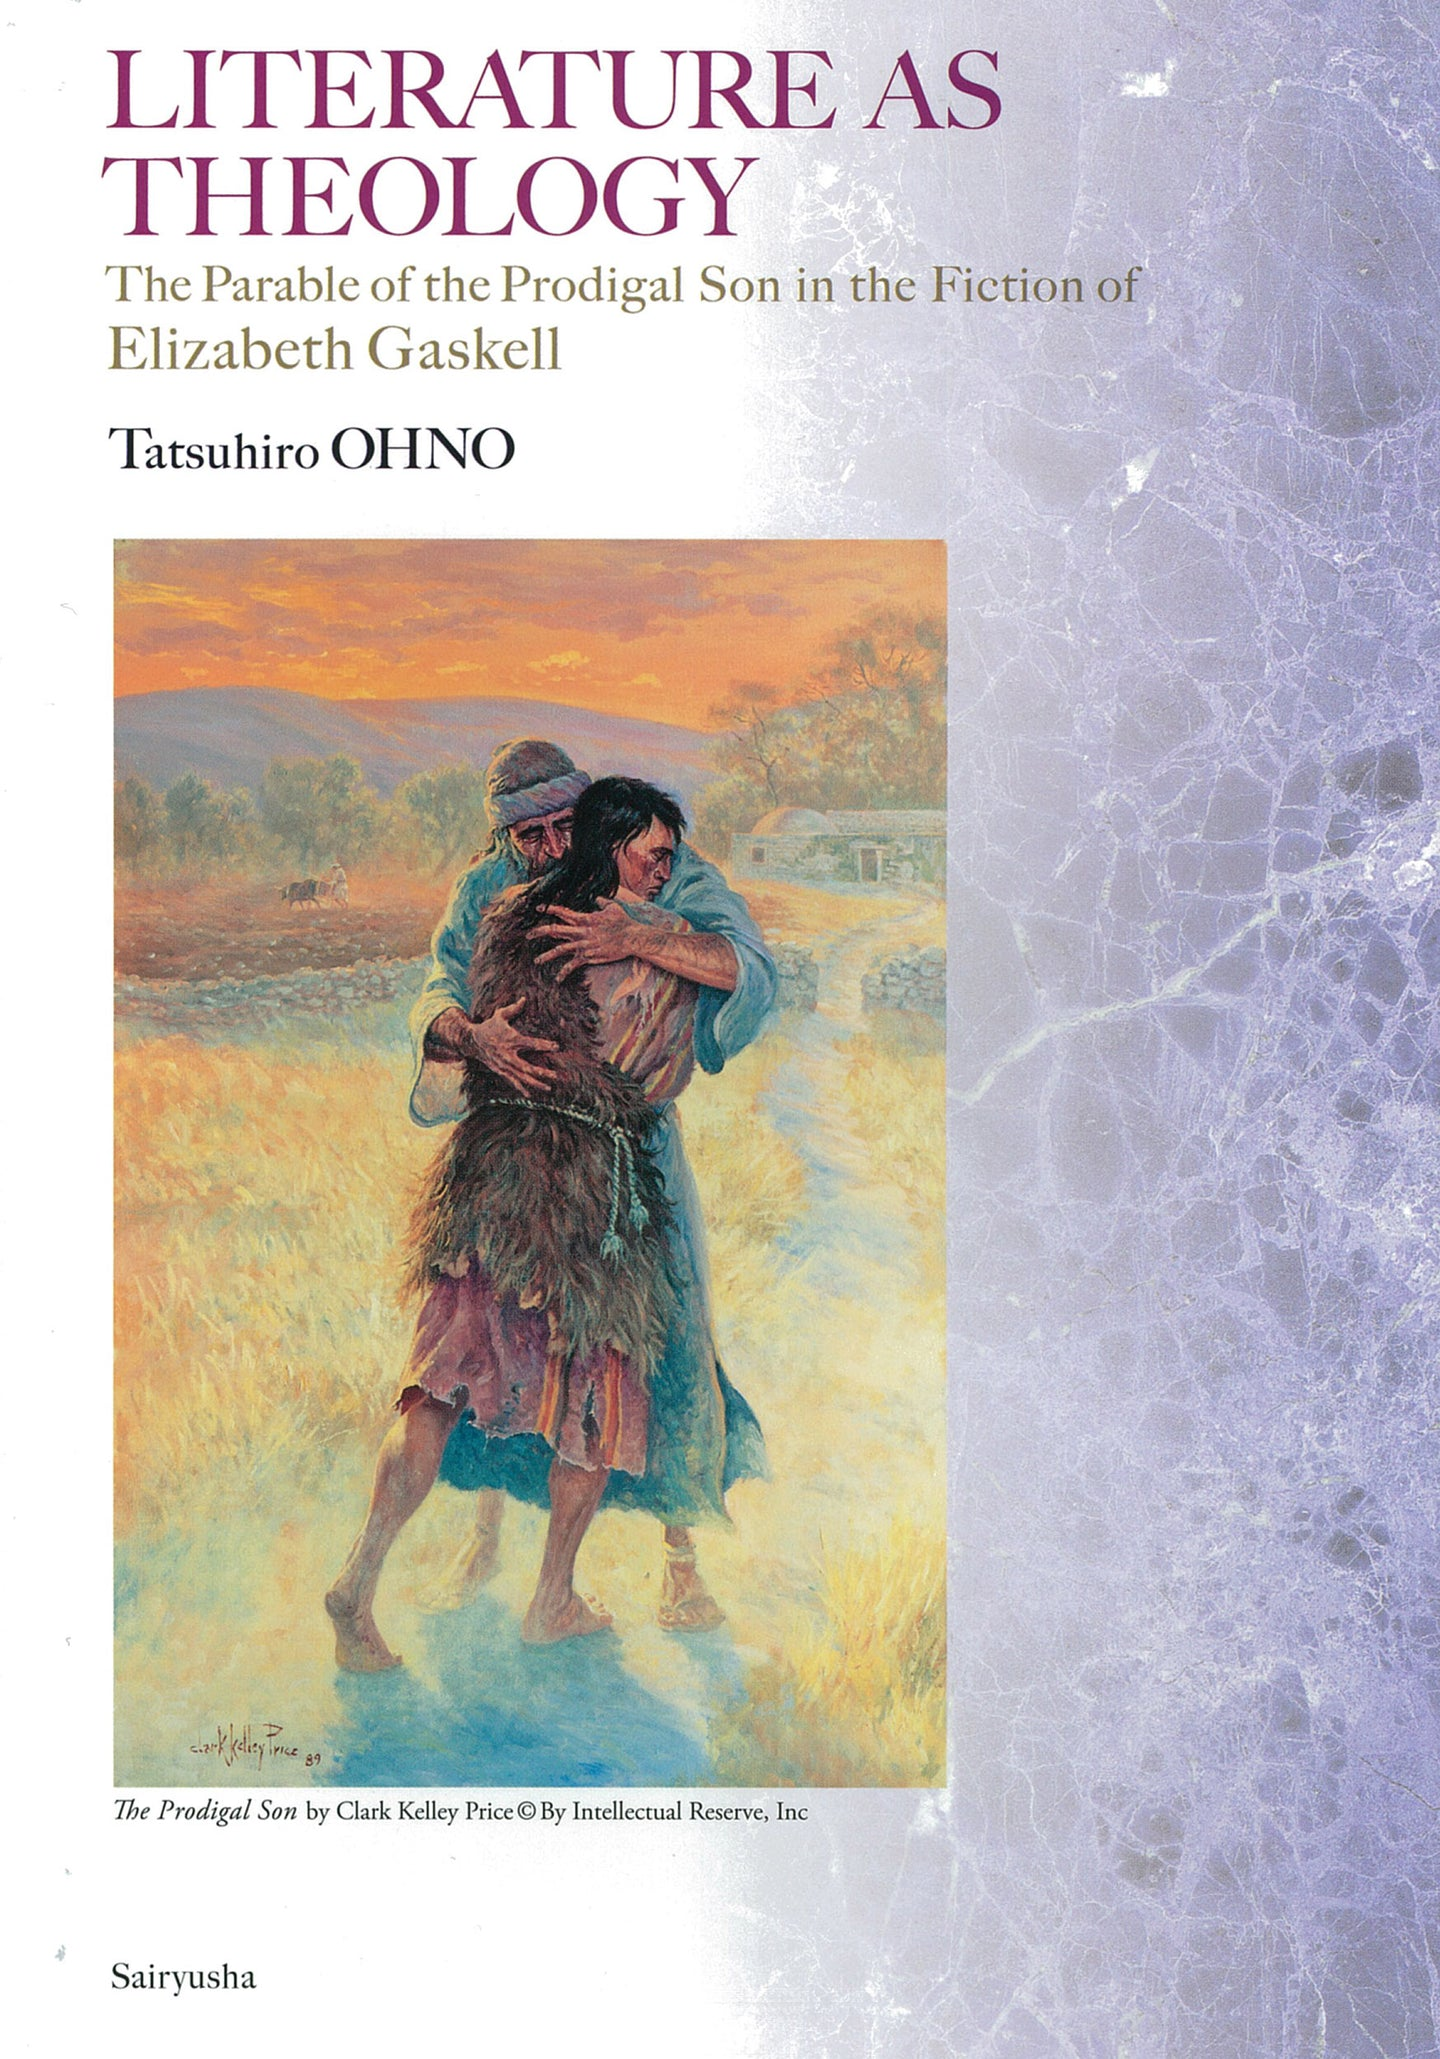 LITERATURE AS THEOLOGY : The Parable of the Prodigal Son in the Fiction of Elizabeth Gaskell